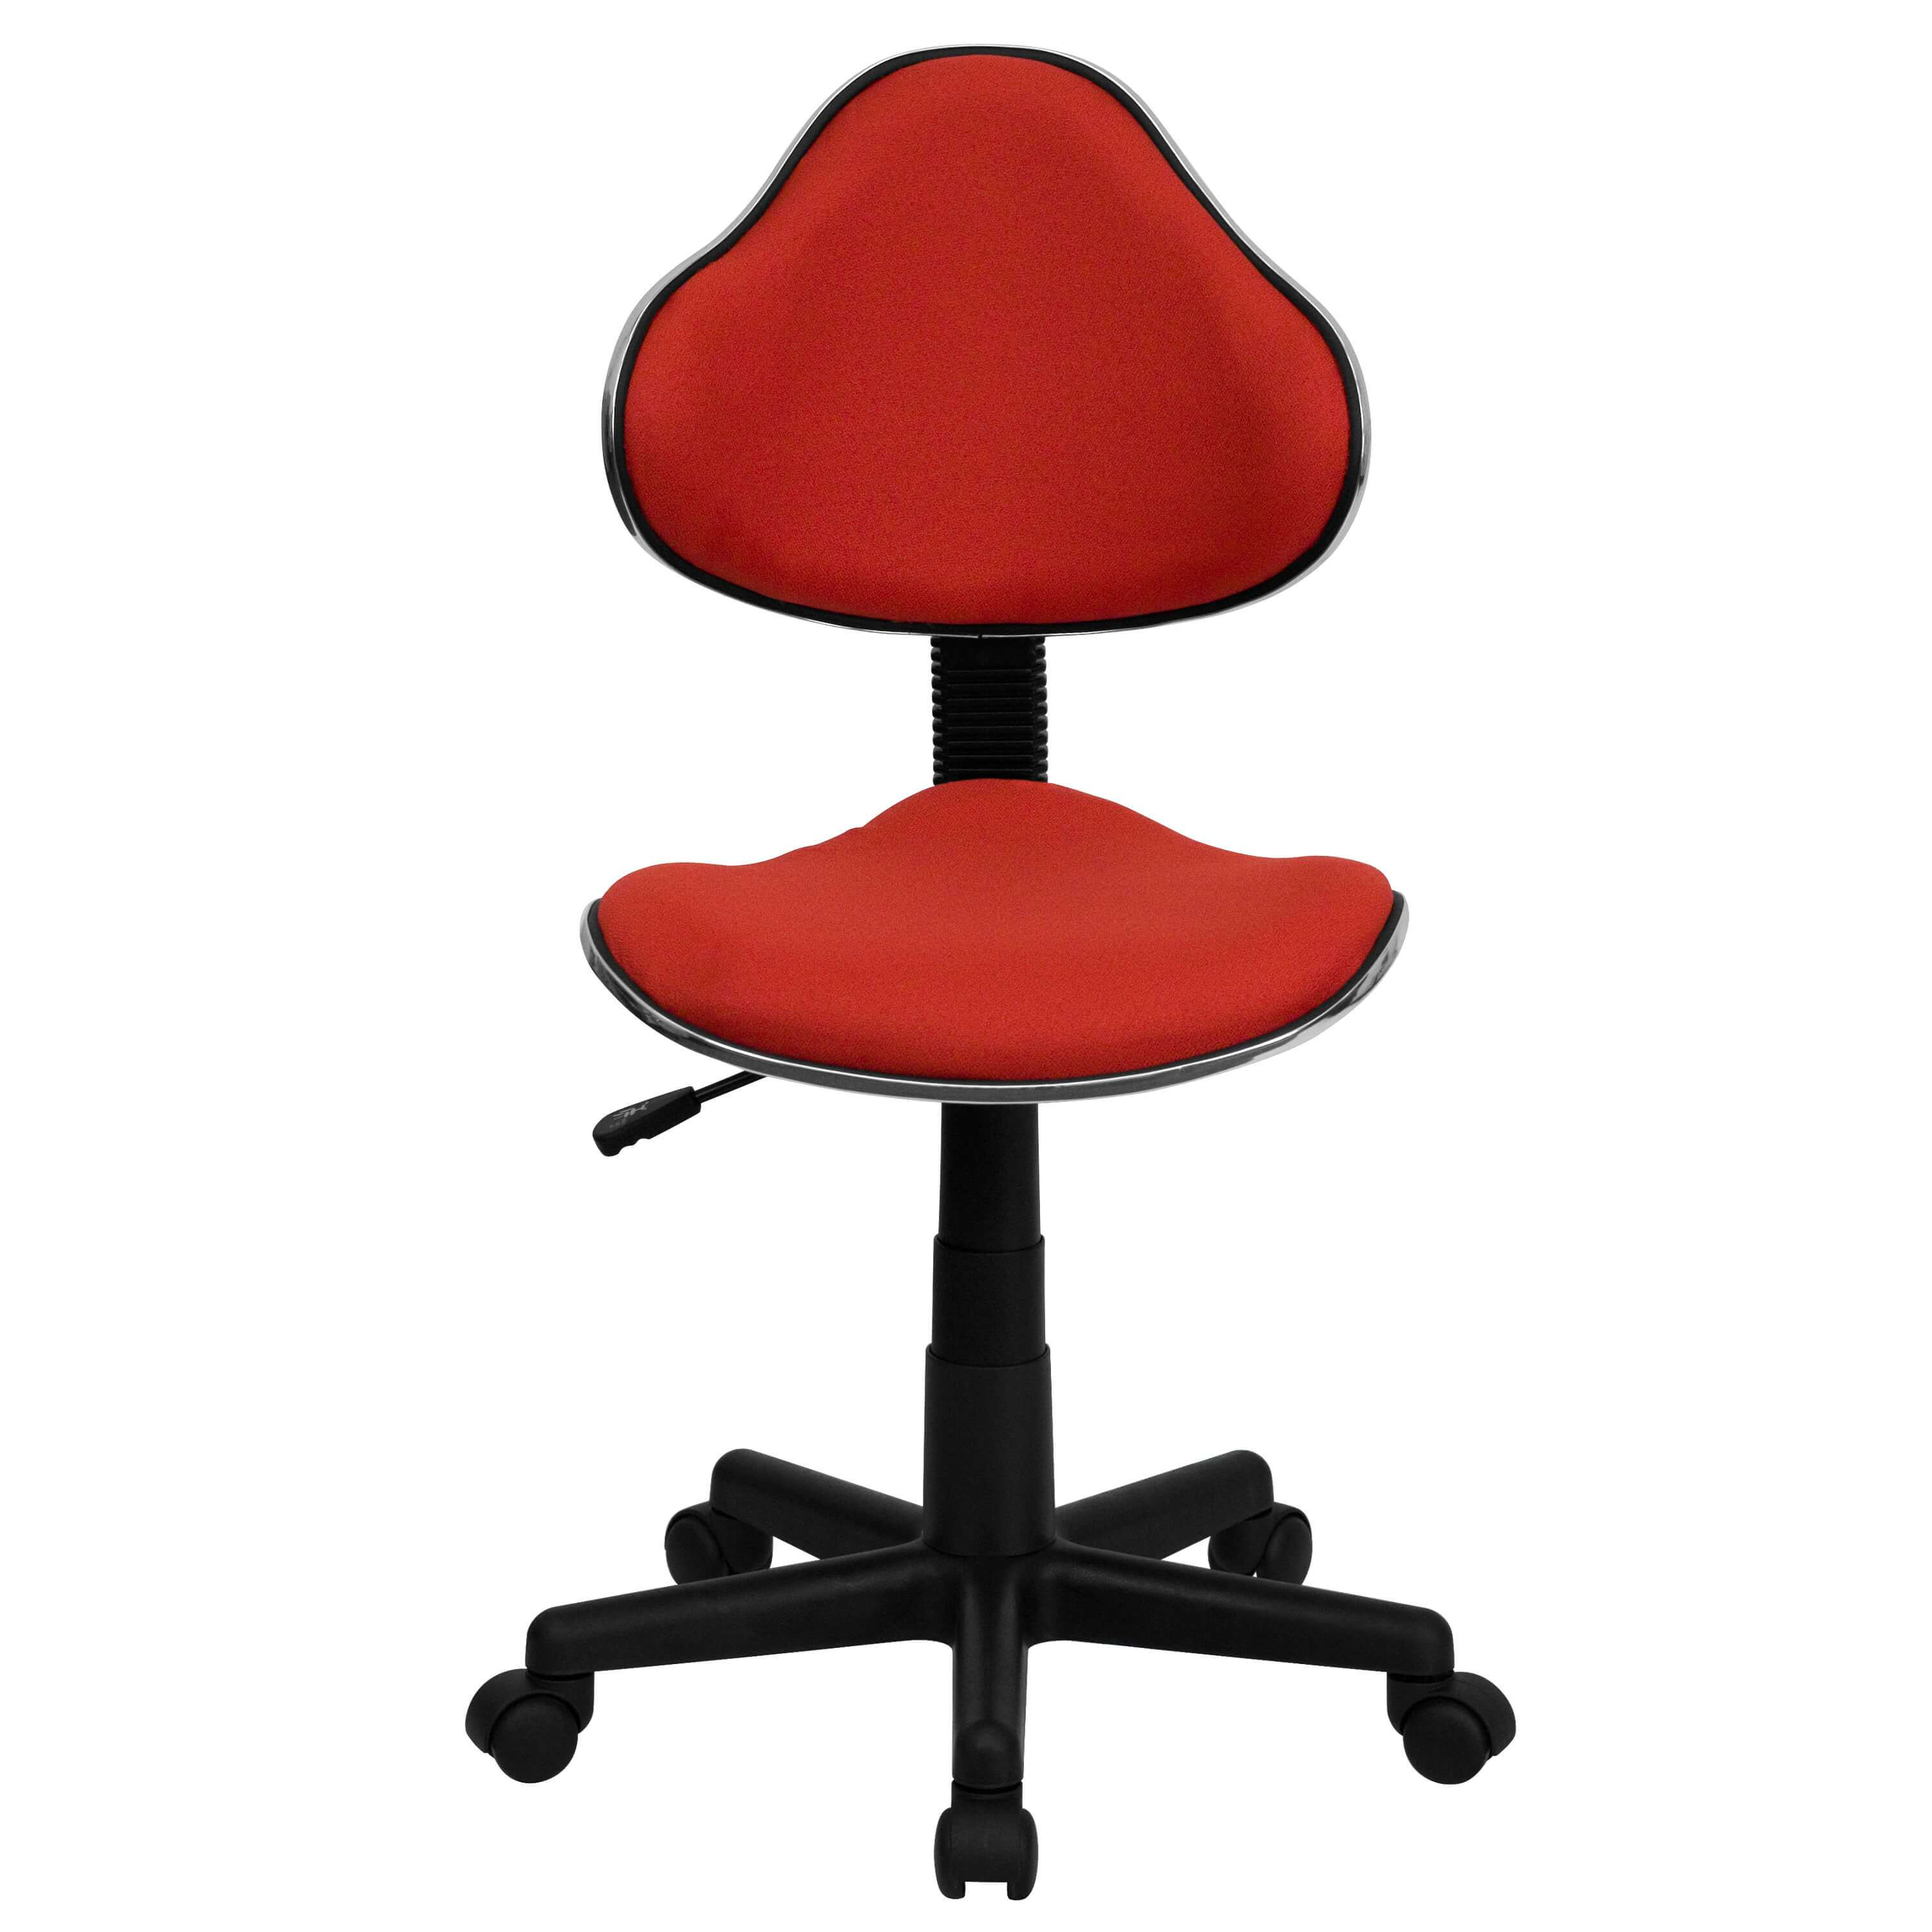 Colorful desk chairs CUB BT 699 RED GG FLA